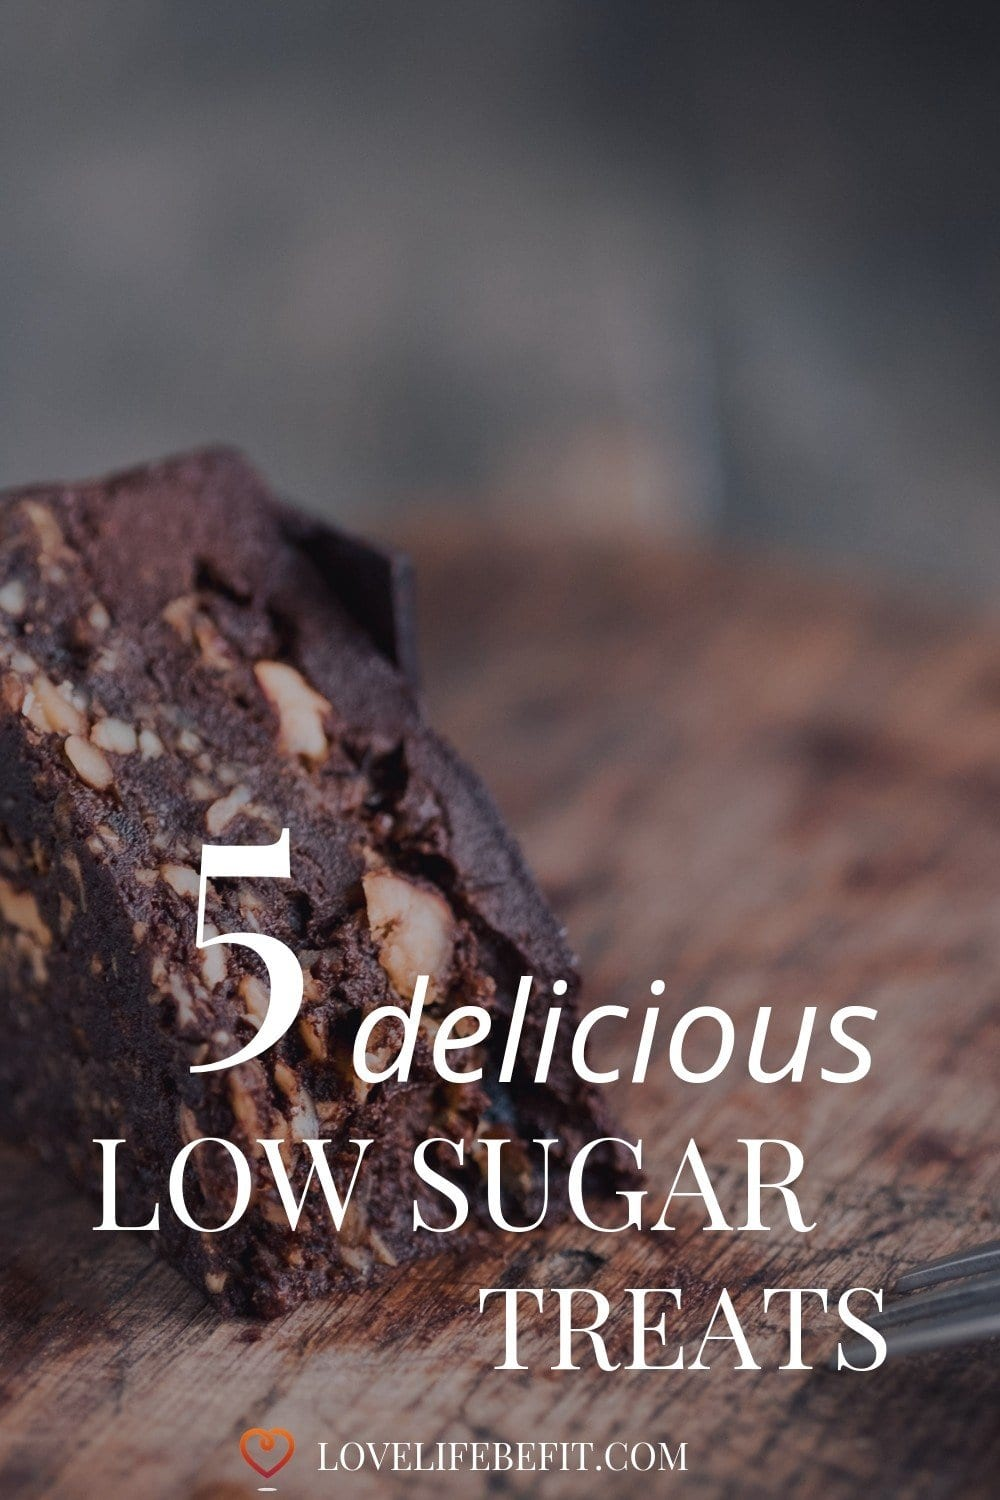 5 Delicious Low Sugar Treats (When You Need A Little Sweet Fix)